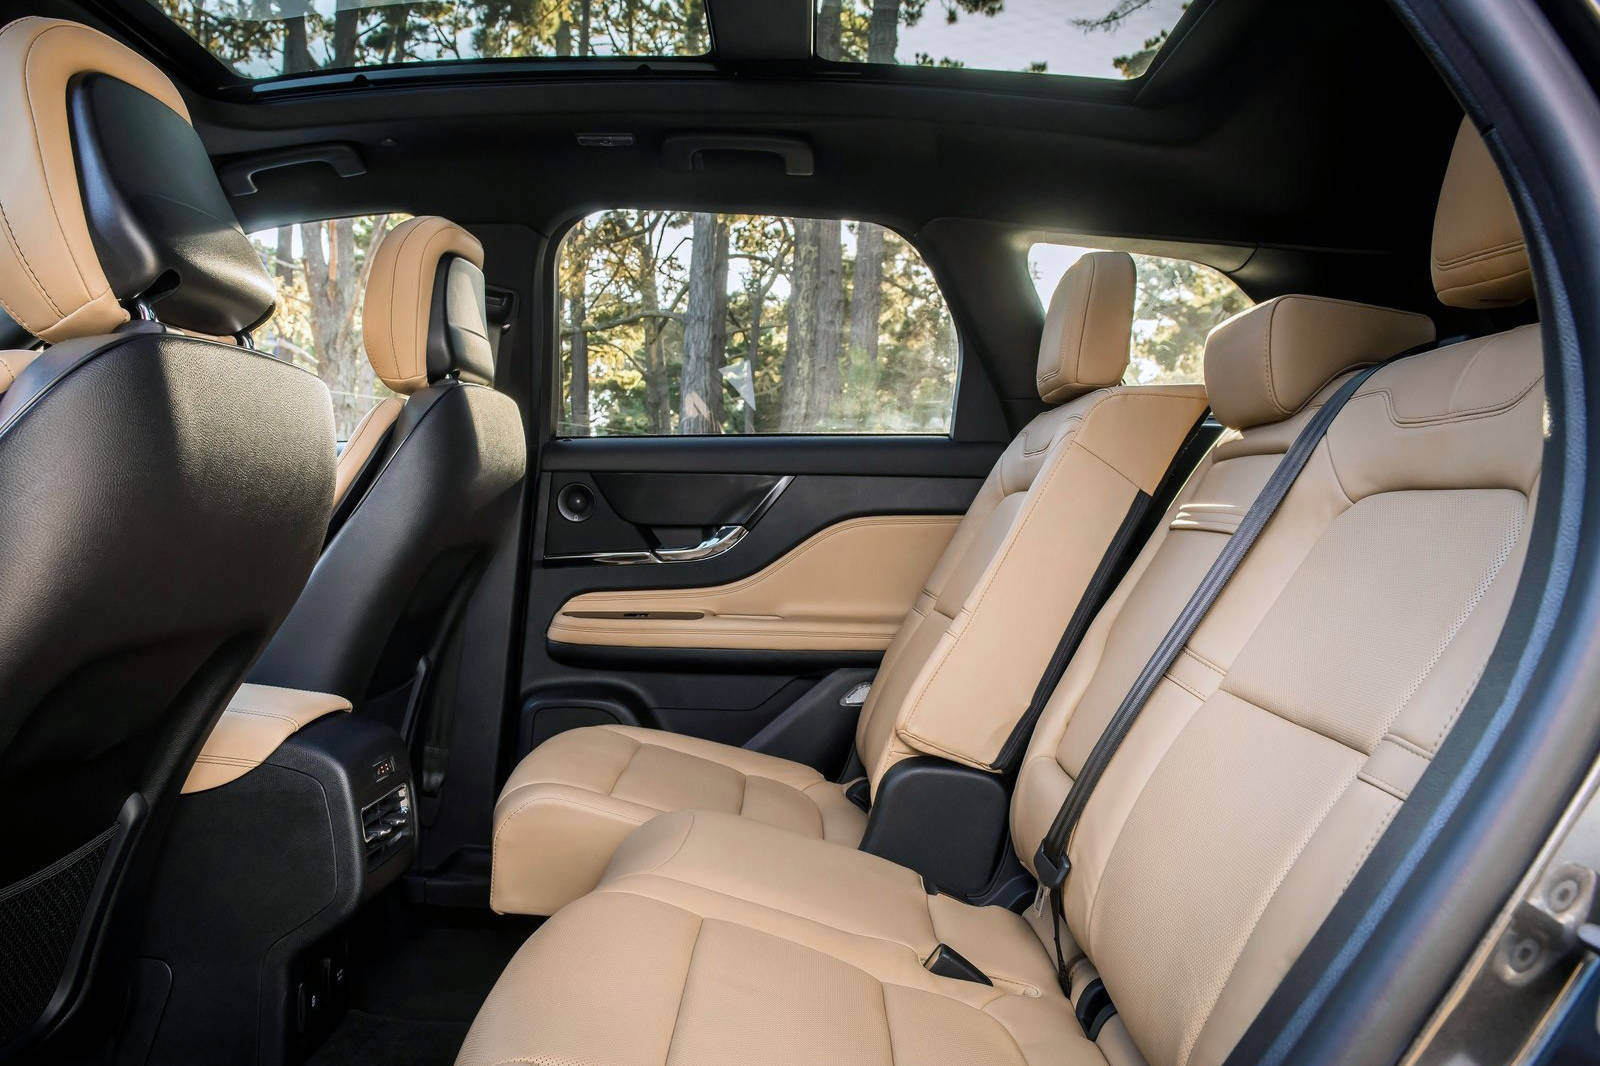 The Corsair is not a large vehicle, so the rear seat moves fore and aft up to 15 centimetres to suit the moment, whether cargo or rear-seat legroom is the priority. PHOTO: LINCOLN